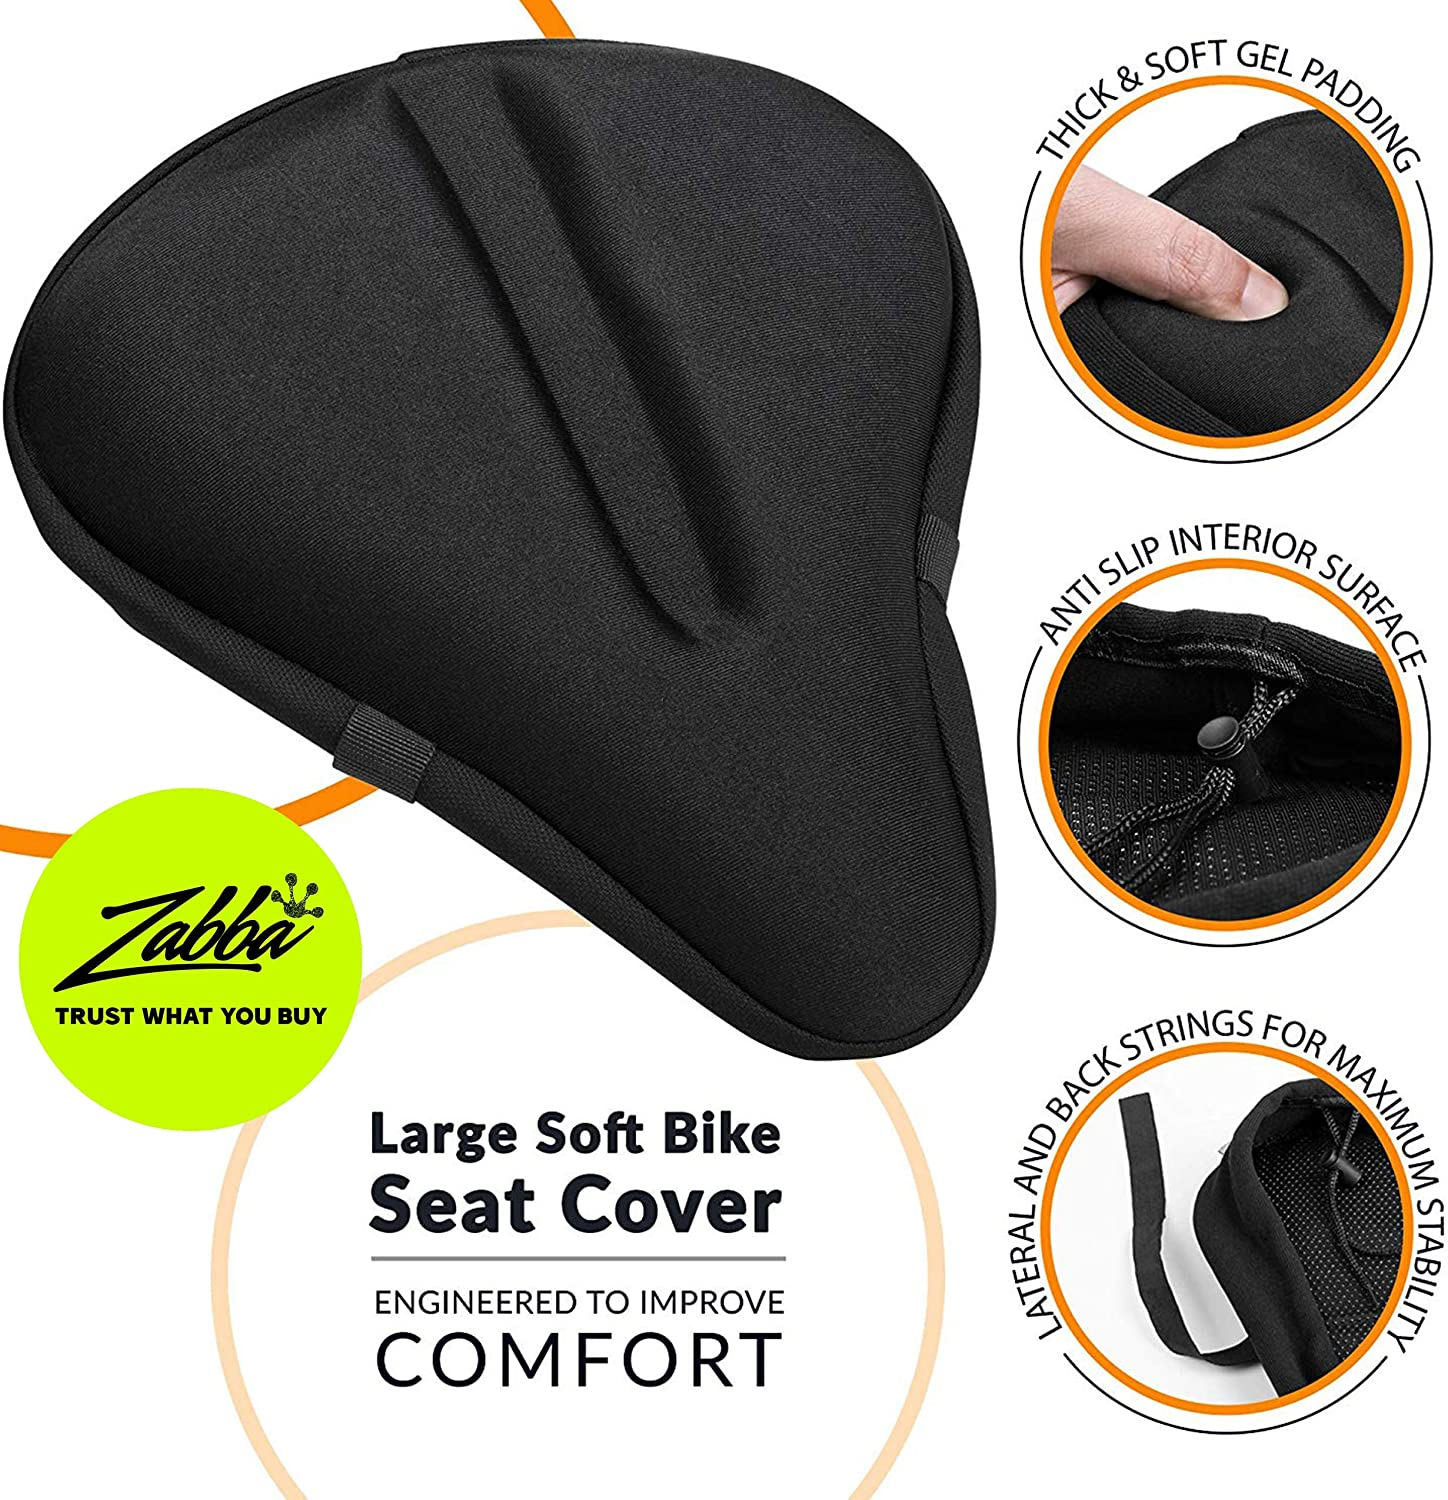 Review of Bikeroo Large Bike Seat Cushion - (11 inches x 10 inches) Wide Gel Soft Pad